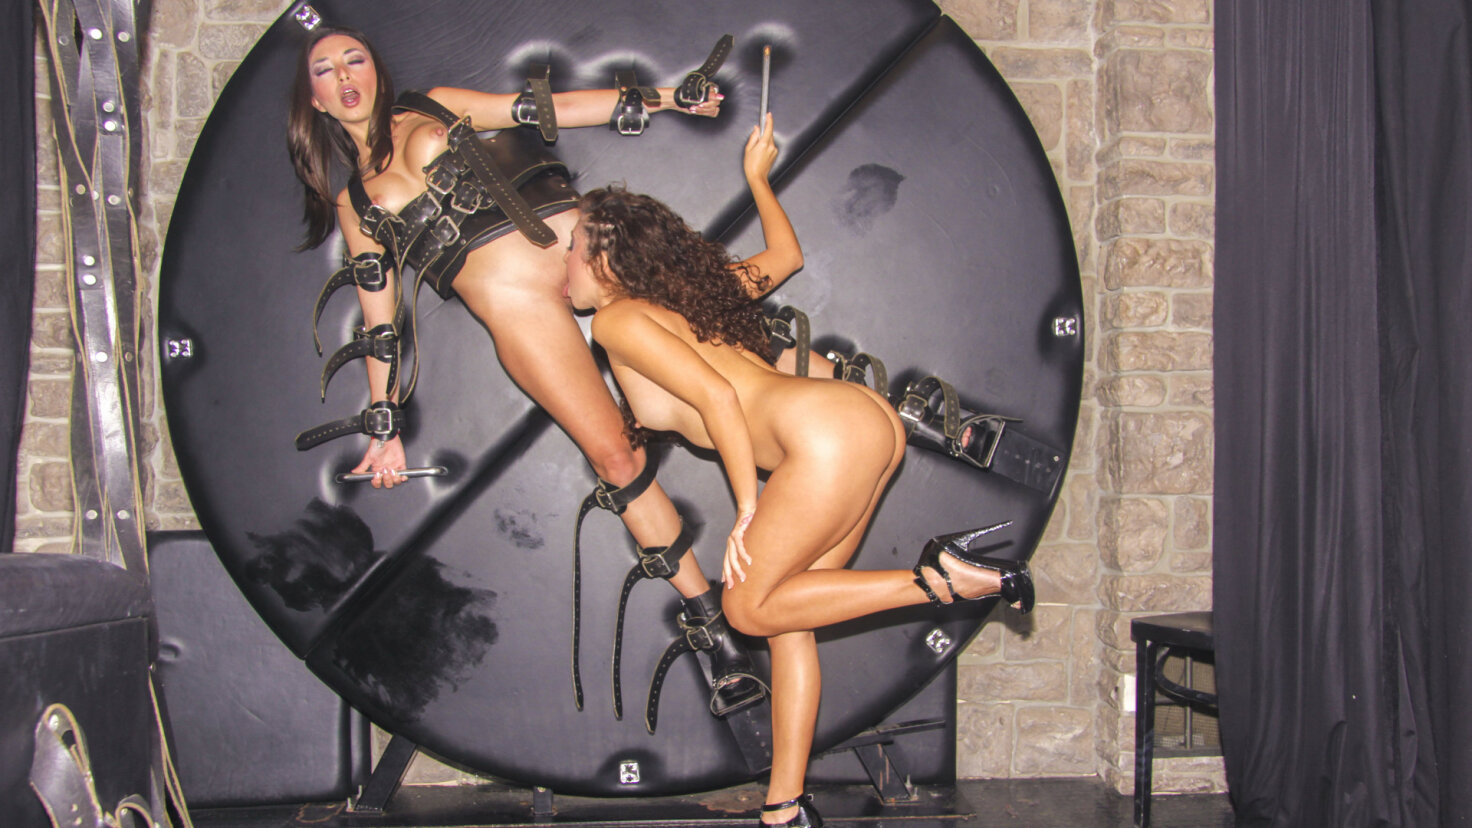 Light BDSM with naughty Mexican lesbians Frida Sante and Melody Petite